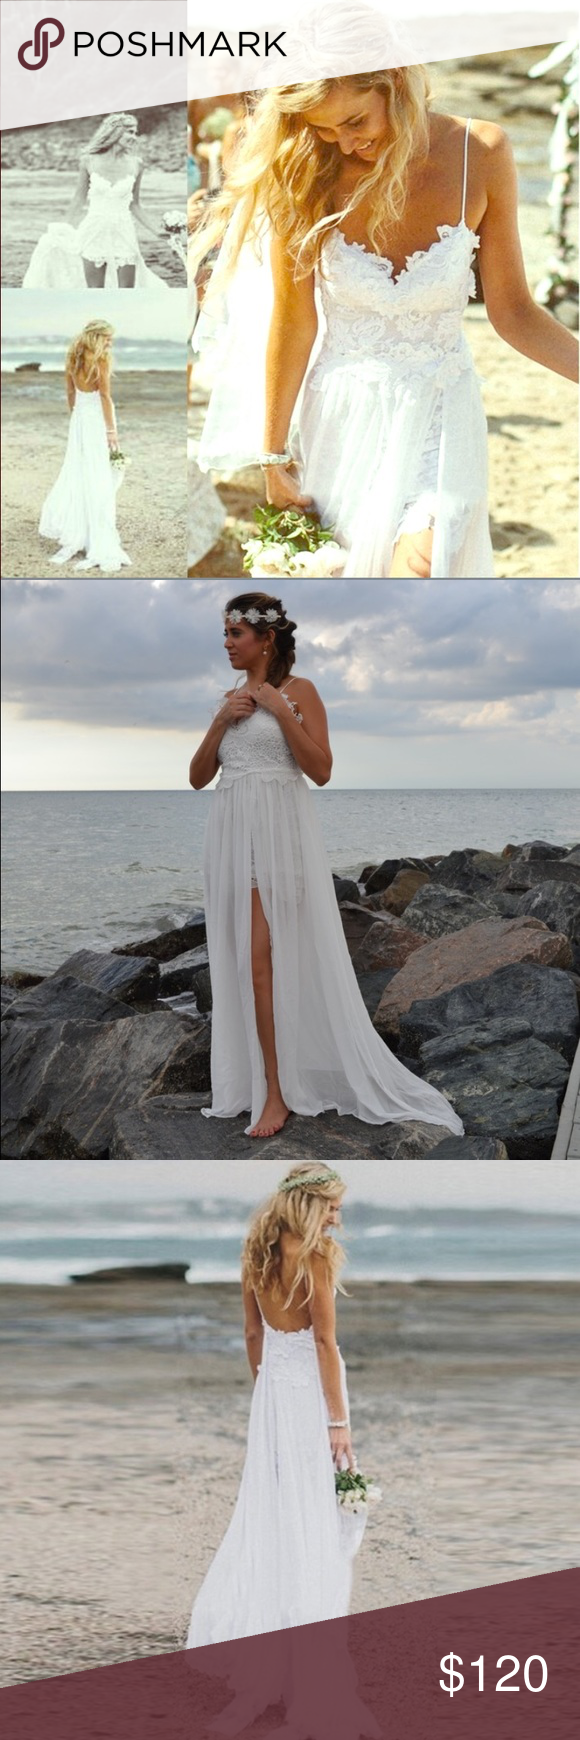 Bridal gown | Bridal gowns, Gowns and Boho